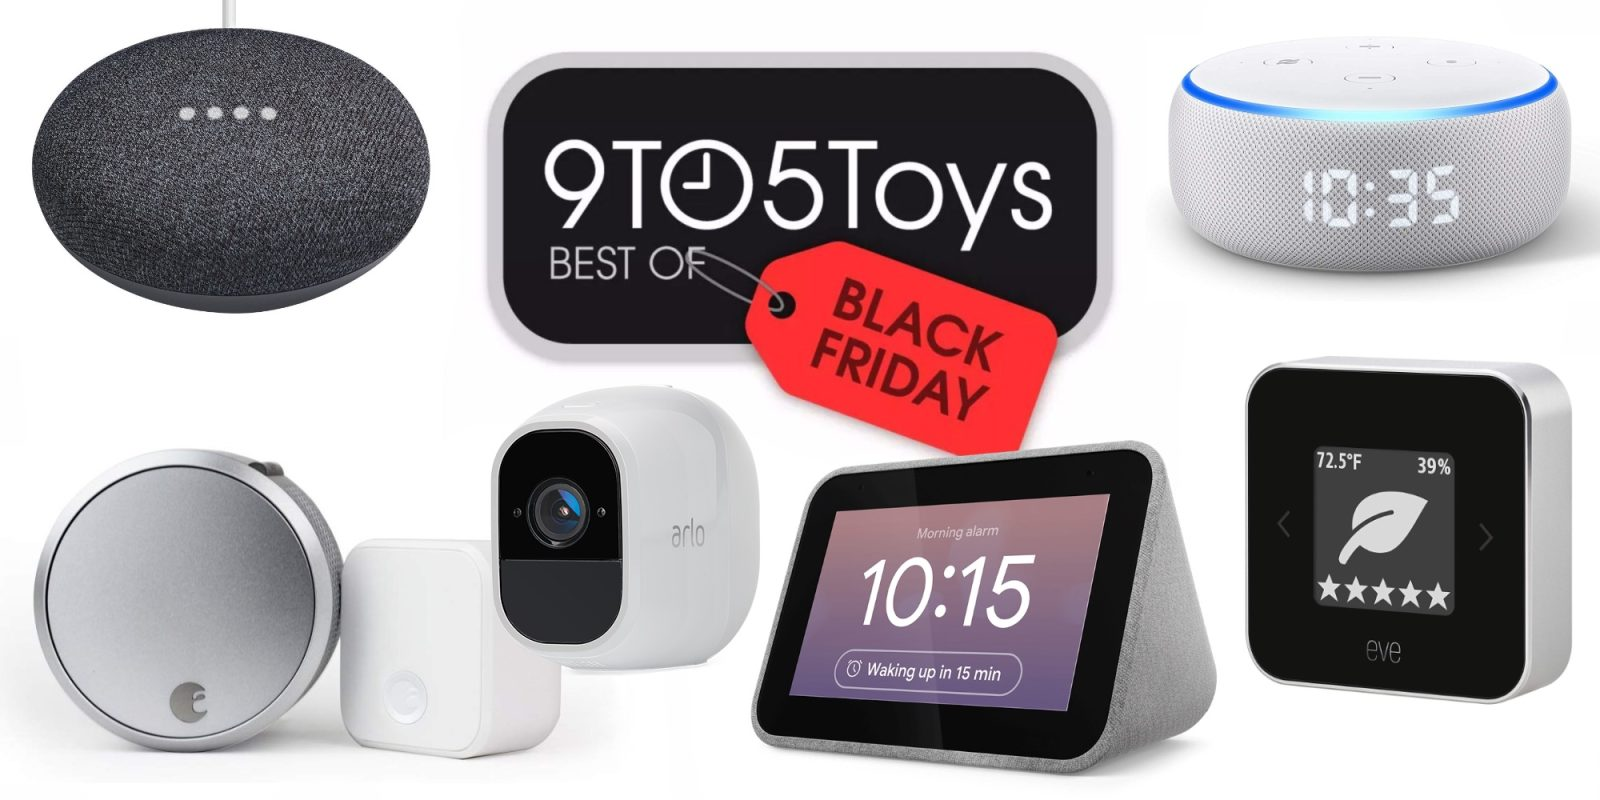 Best of Black Friday 2019 – Smart Home: Home Mini $19, Echo Dot $22, Ring, Arlo, more